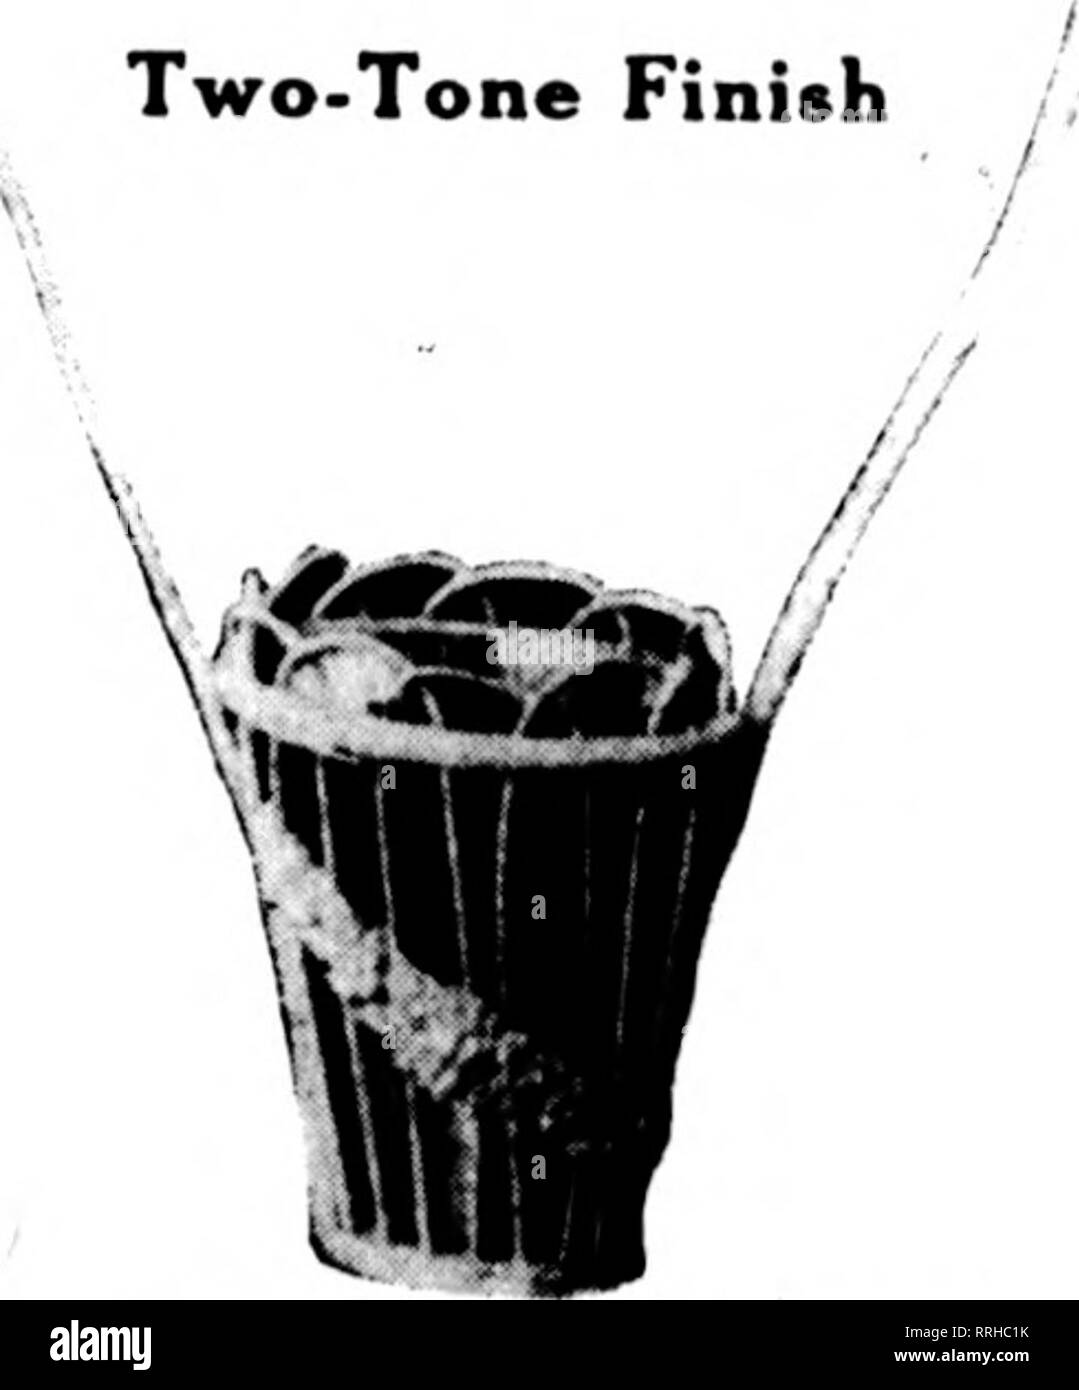 . Florists' review [microform]. Floriculture. , Two-Tone Finish /. Please note that these images are extracted from scanned page images that may have been digitally enhanced for readability - coloration and appearance of these illustrations may not perfectly resemble the original work.. Chicago : Florists' Pub. Co - Stock Image